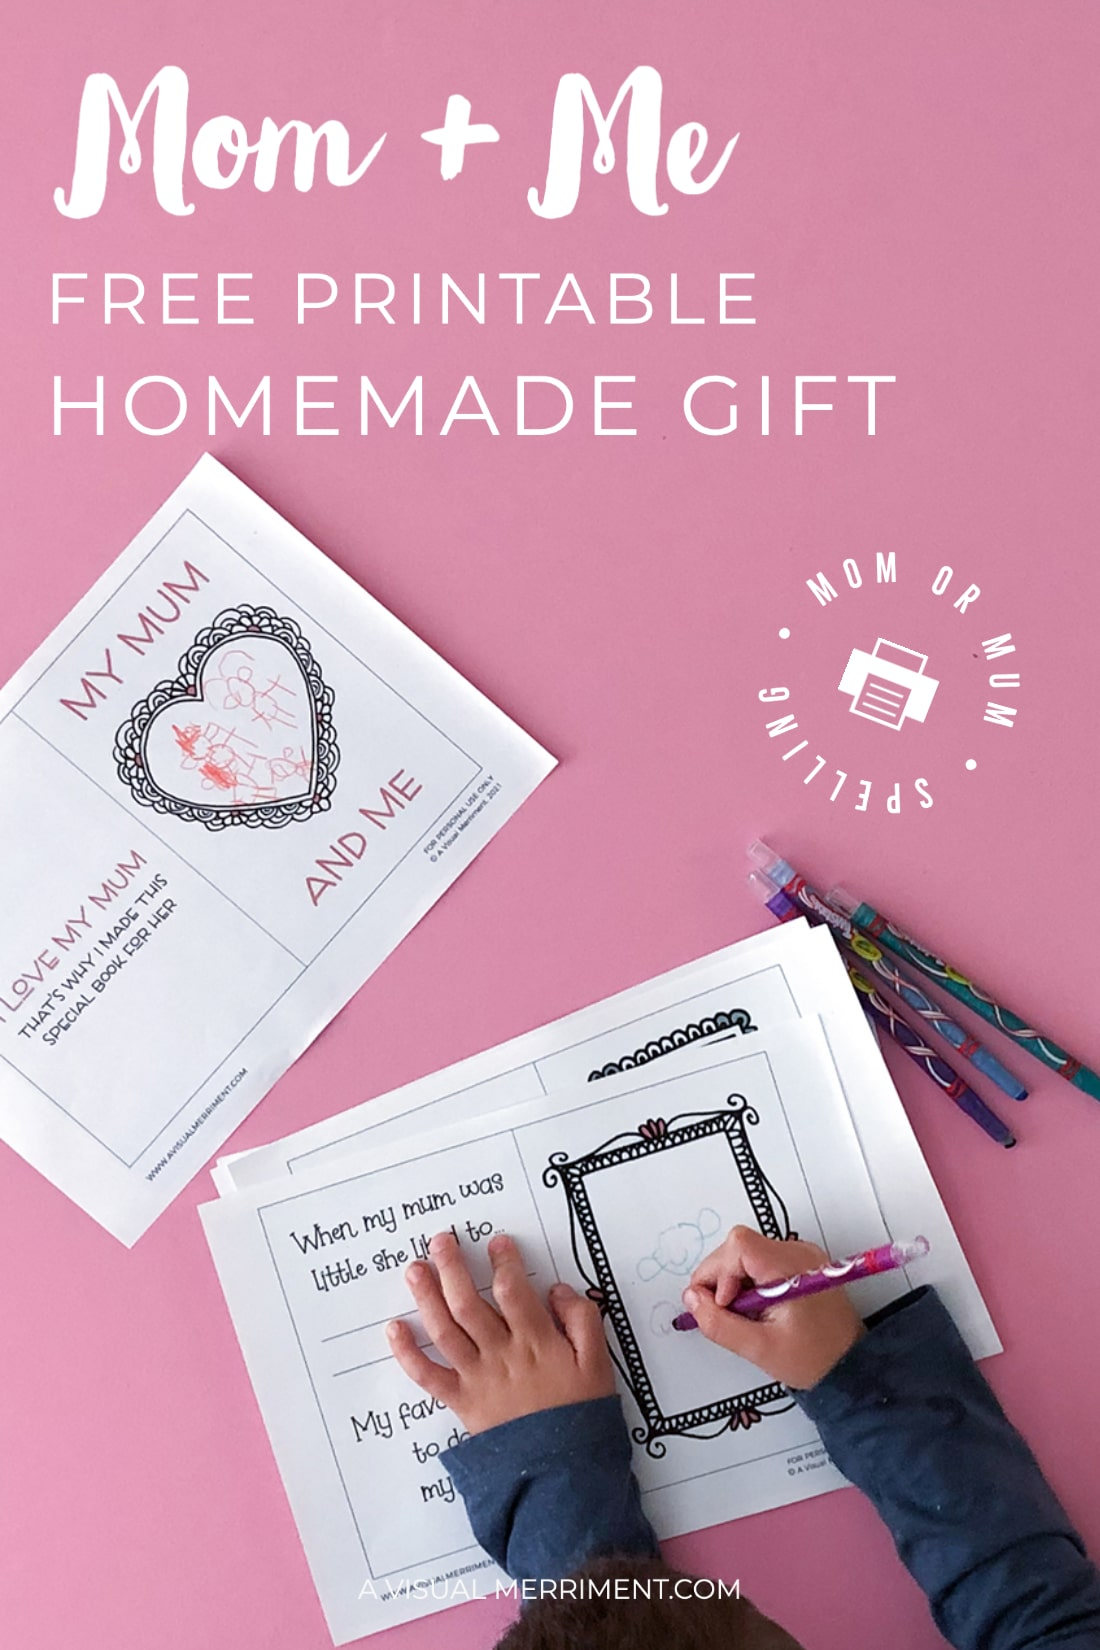 Mom and me printable homemade gift graphic with boy drawing